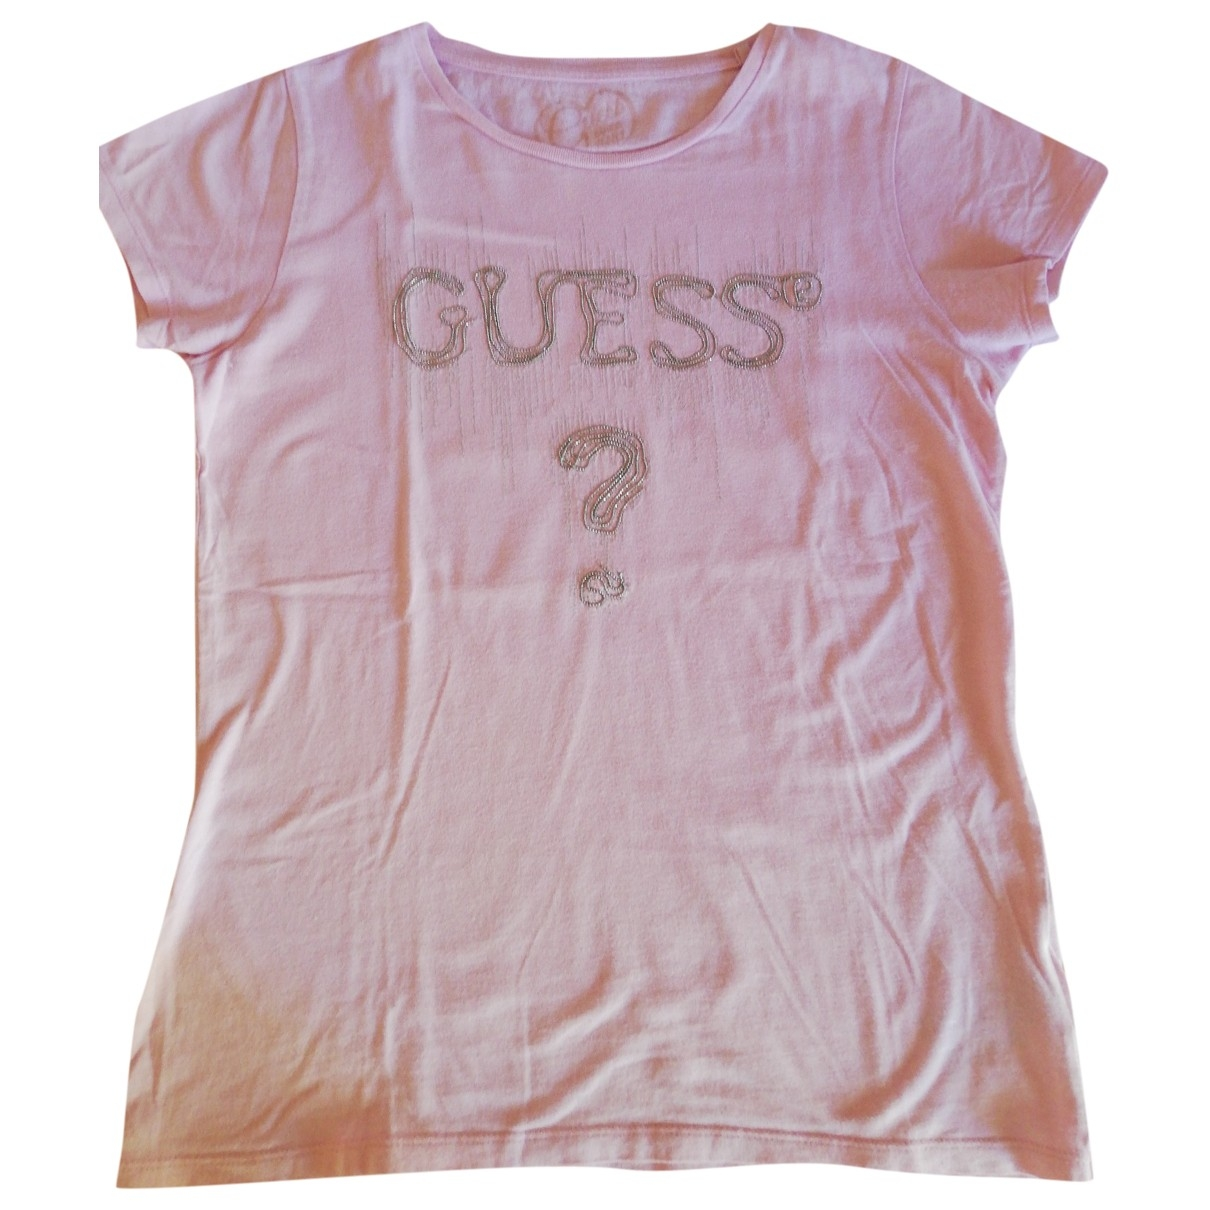 Guess \N Pink Cotton  top for Kids 14 years - S FR